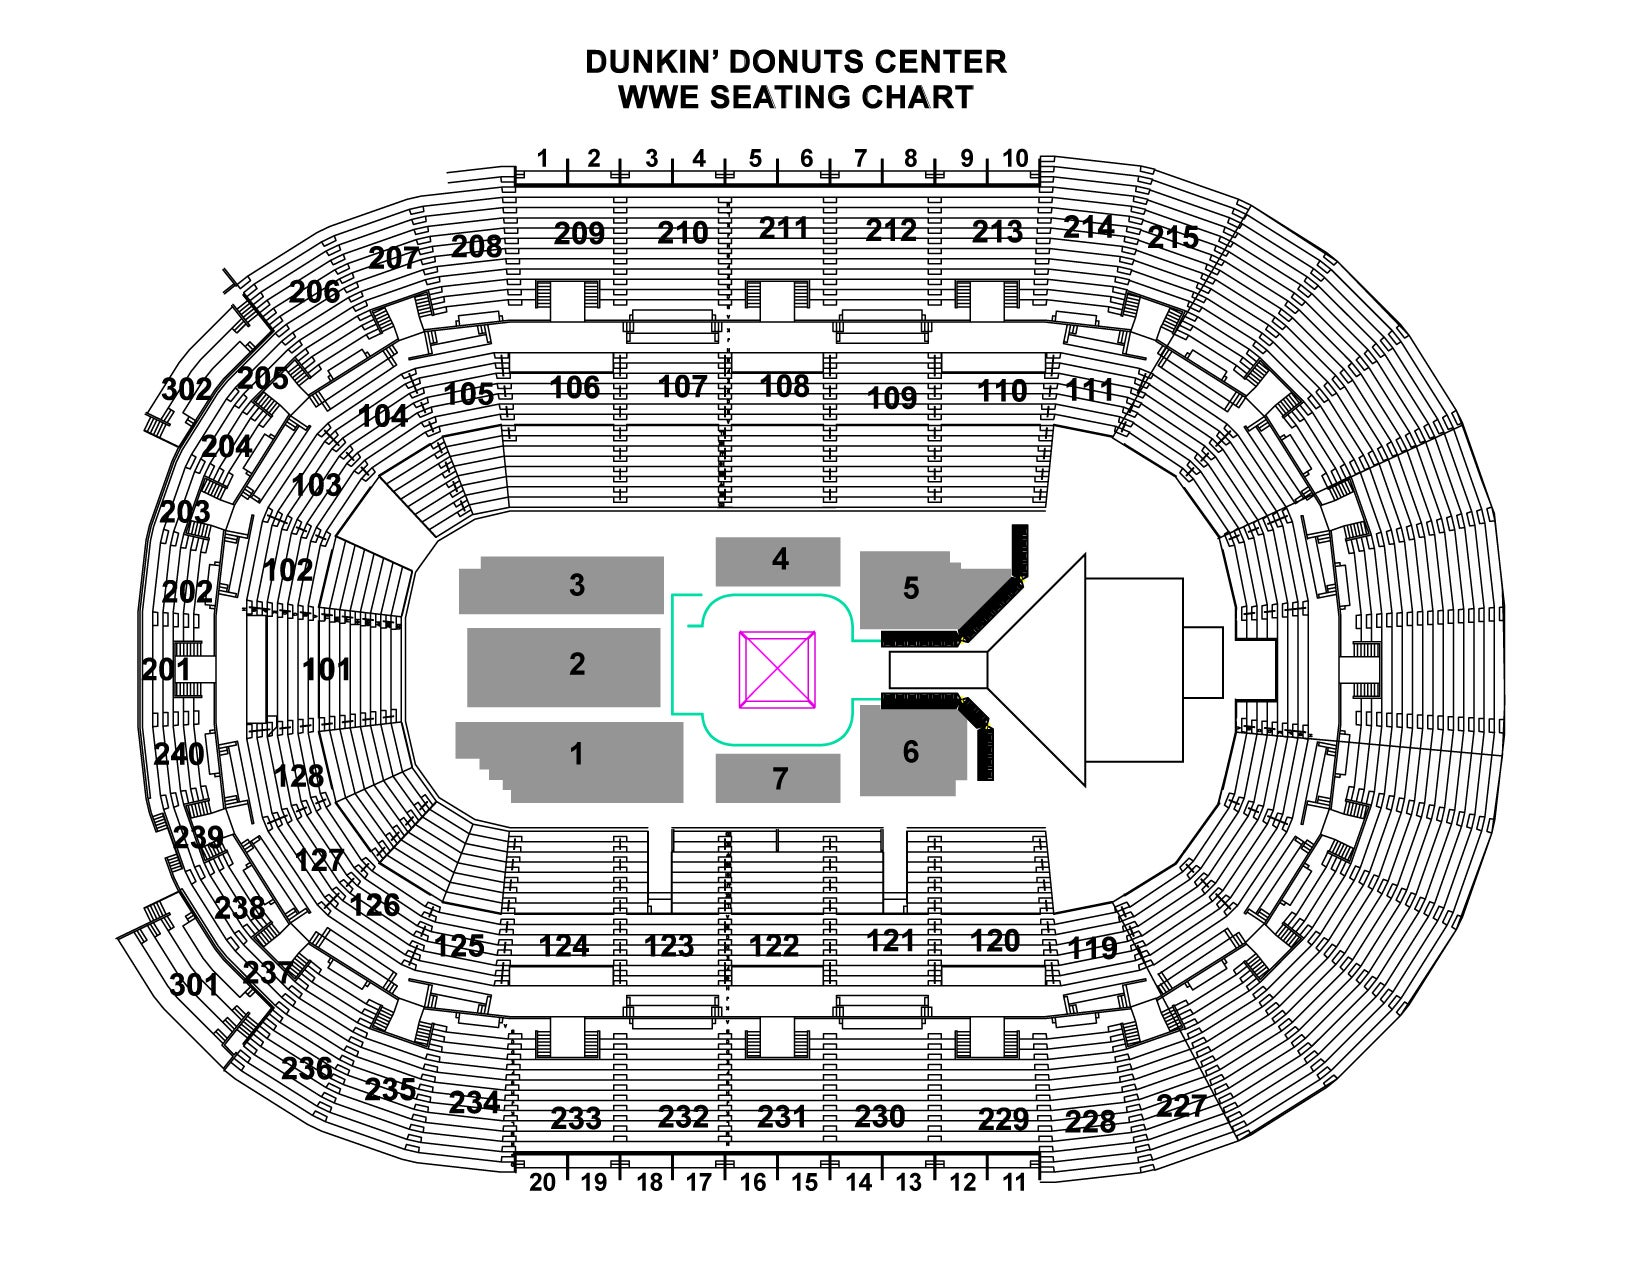 WWE Seating Chart